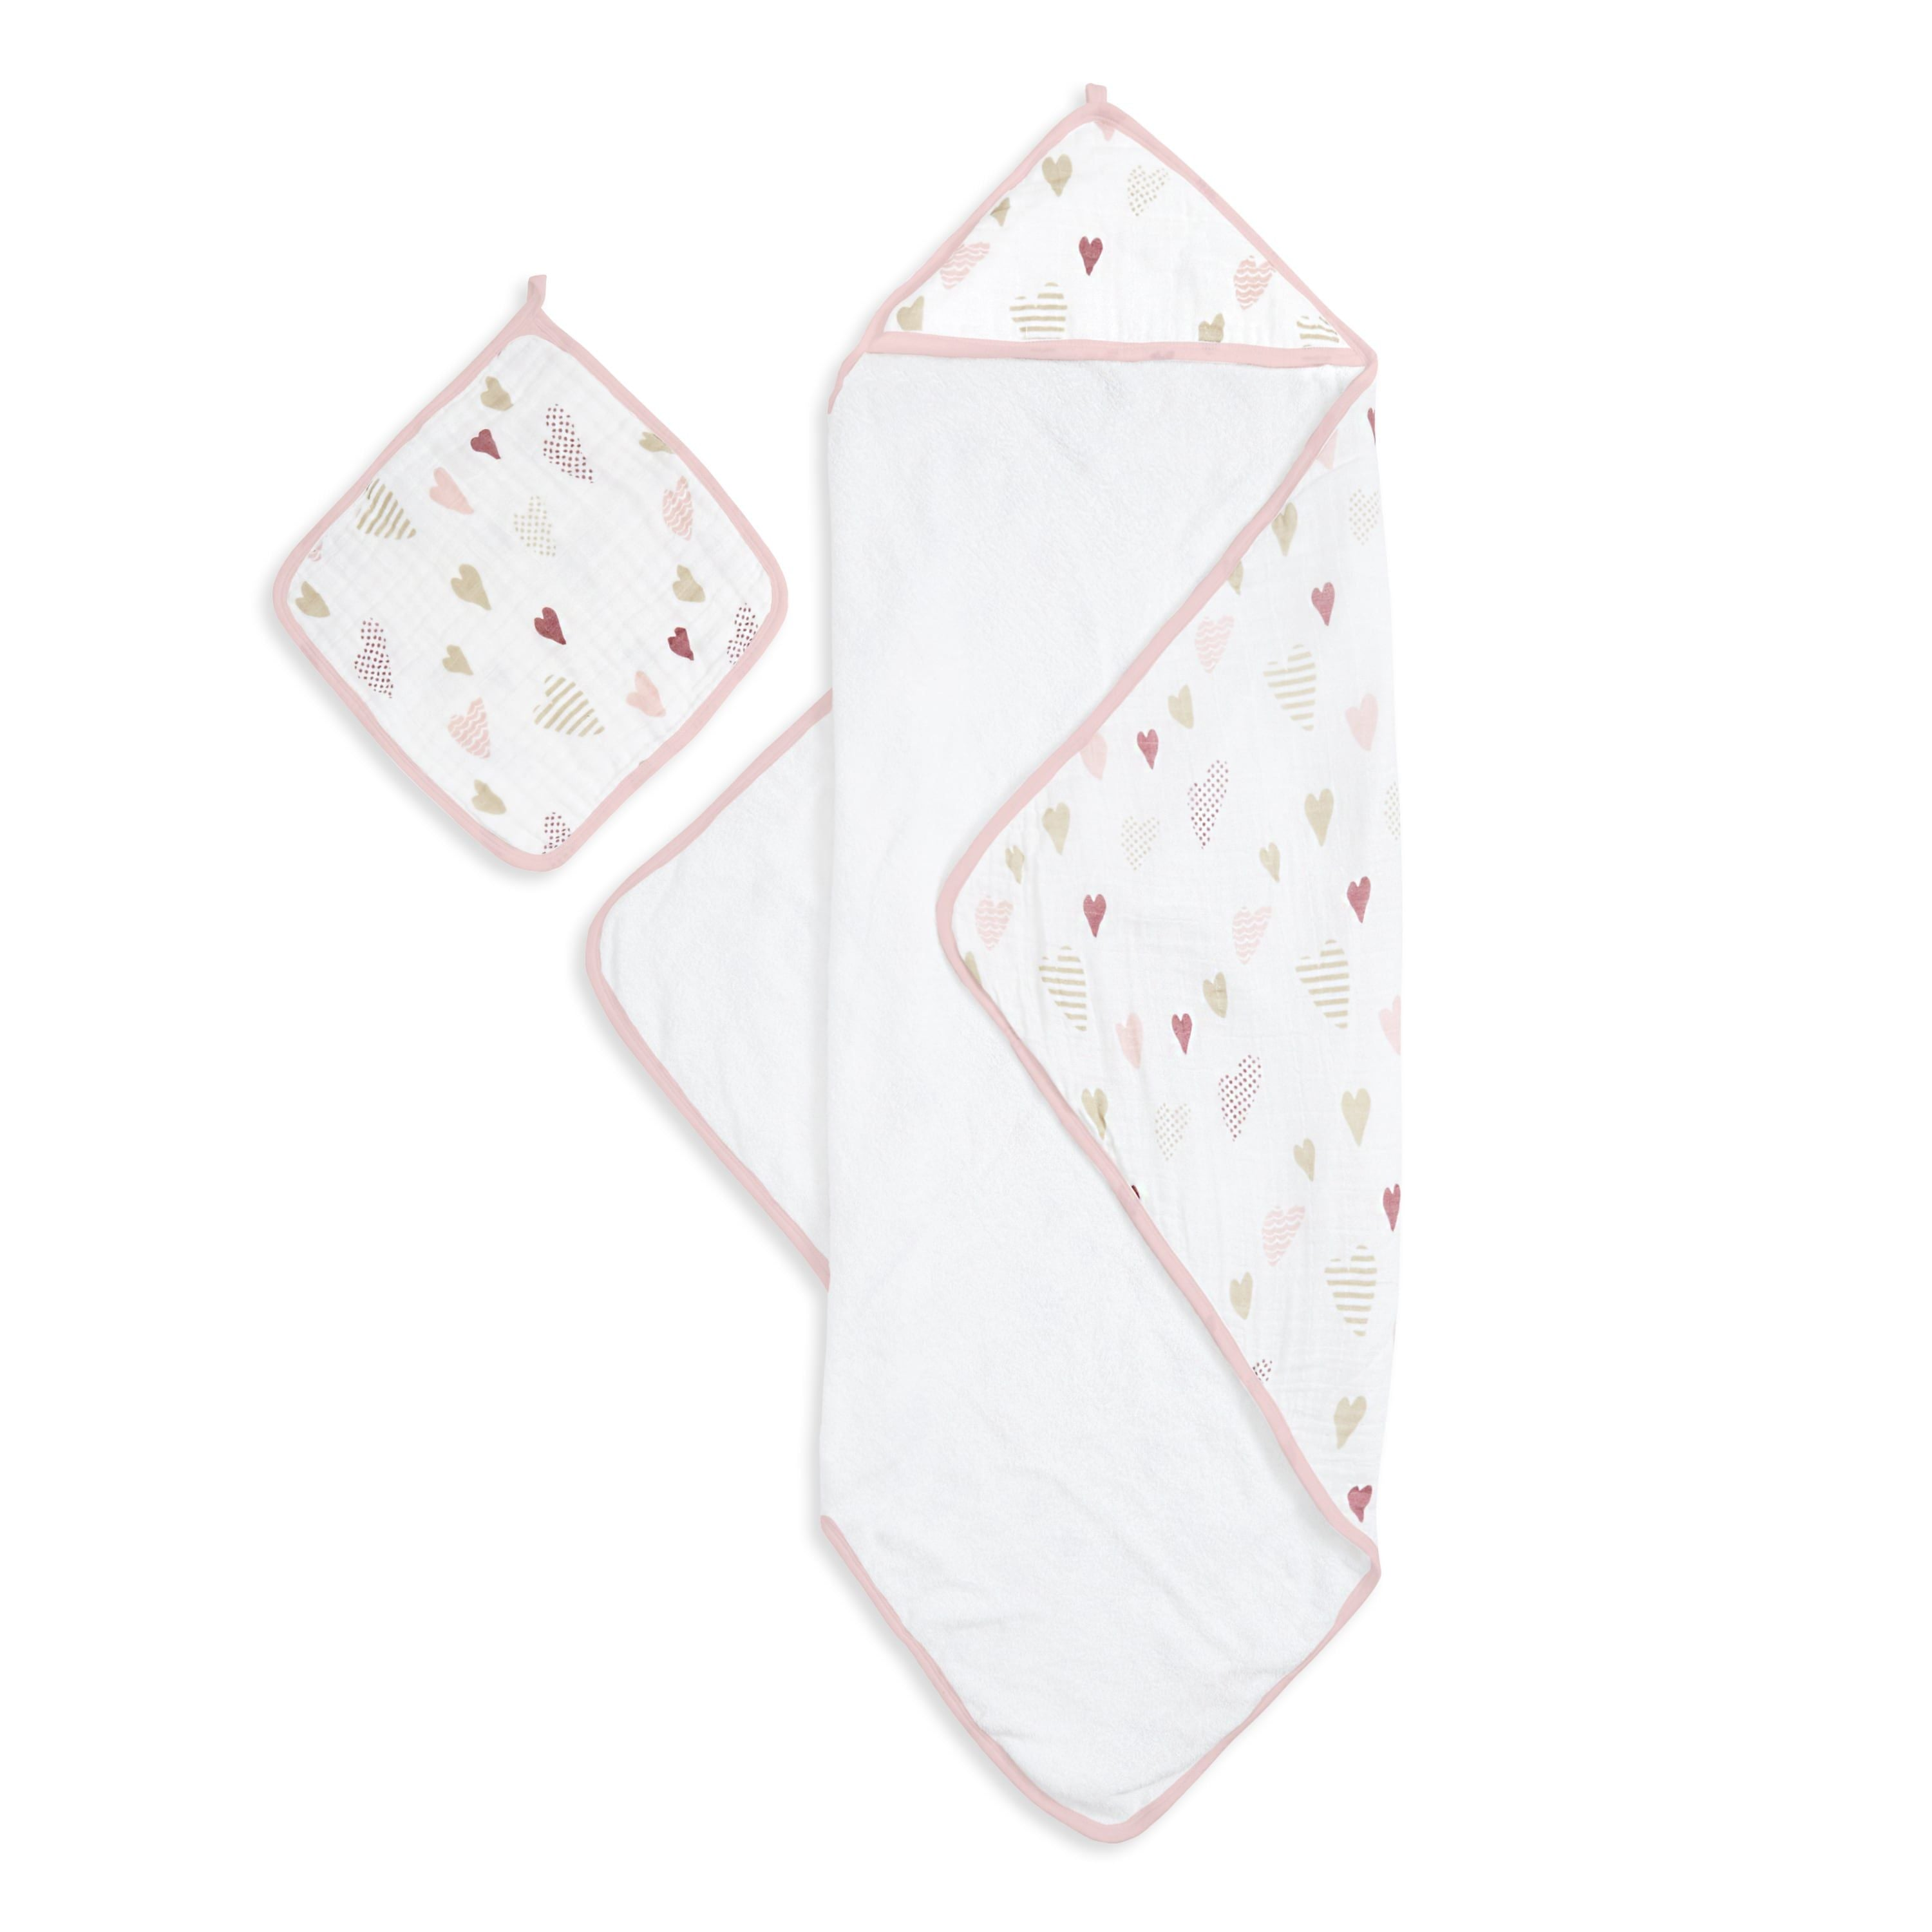 Muslin-backed Hooded Towel & Washcloth Set - Heart Breaker